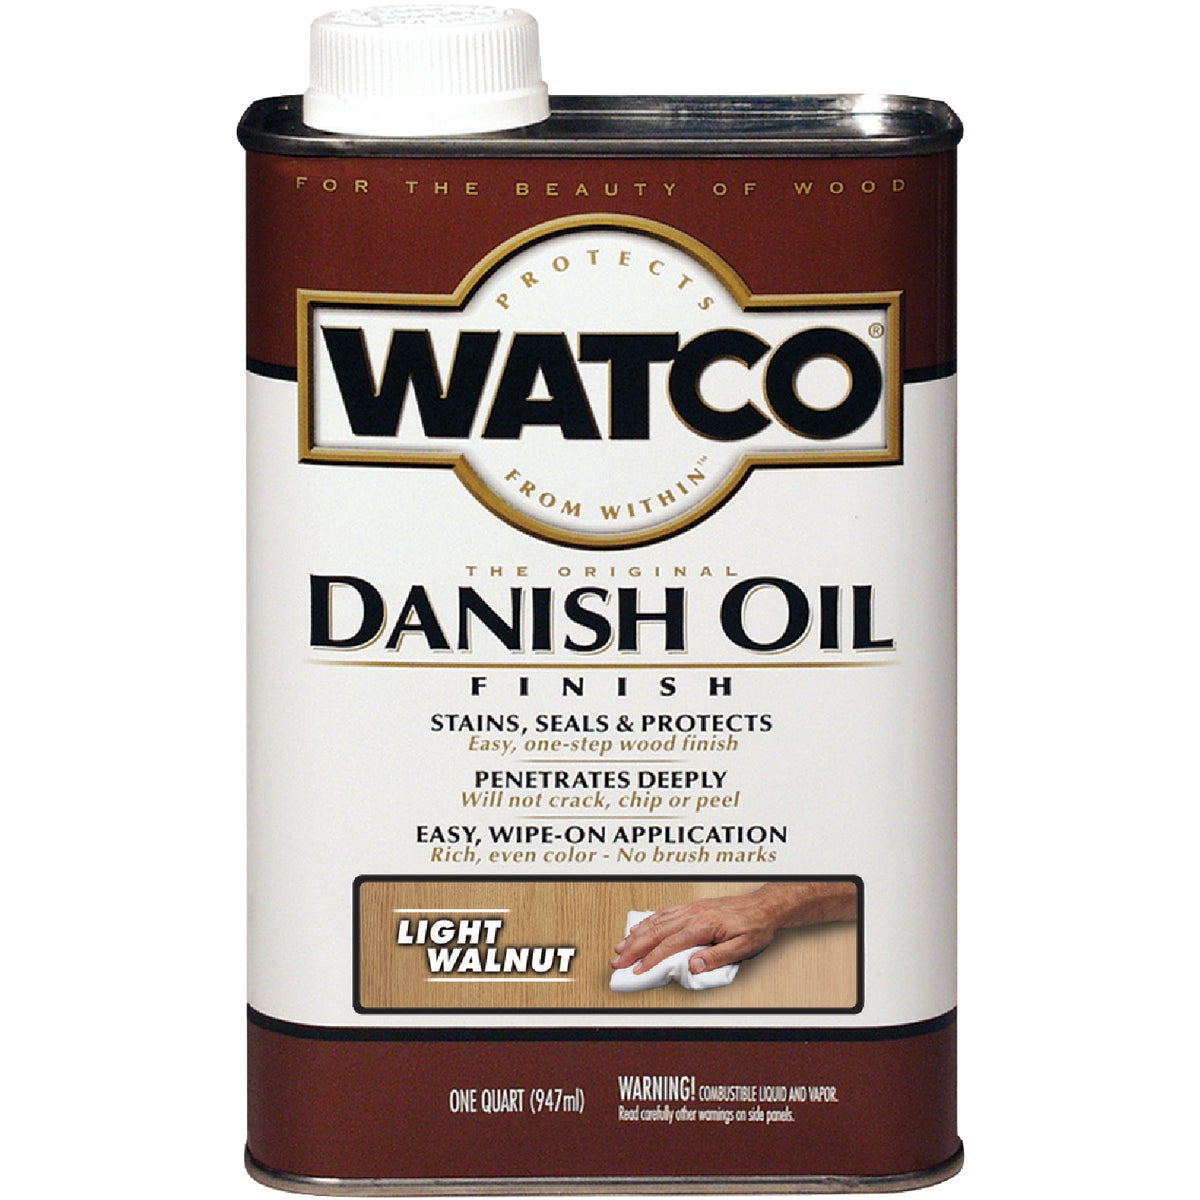 LIGHT WALNUT DANISH OIL